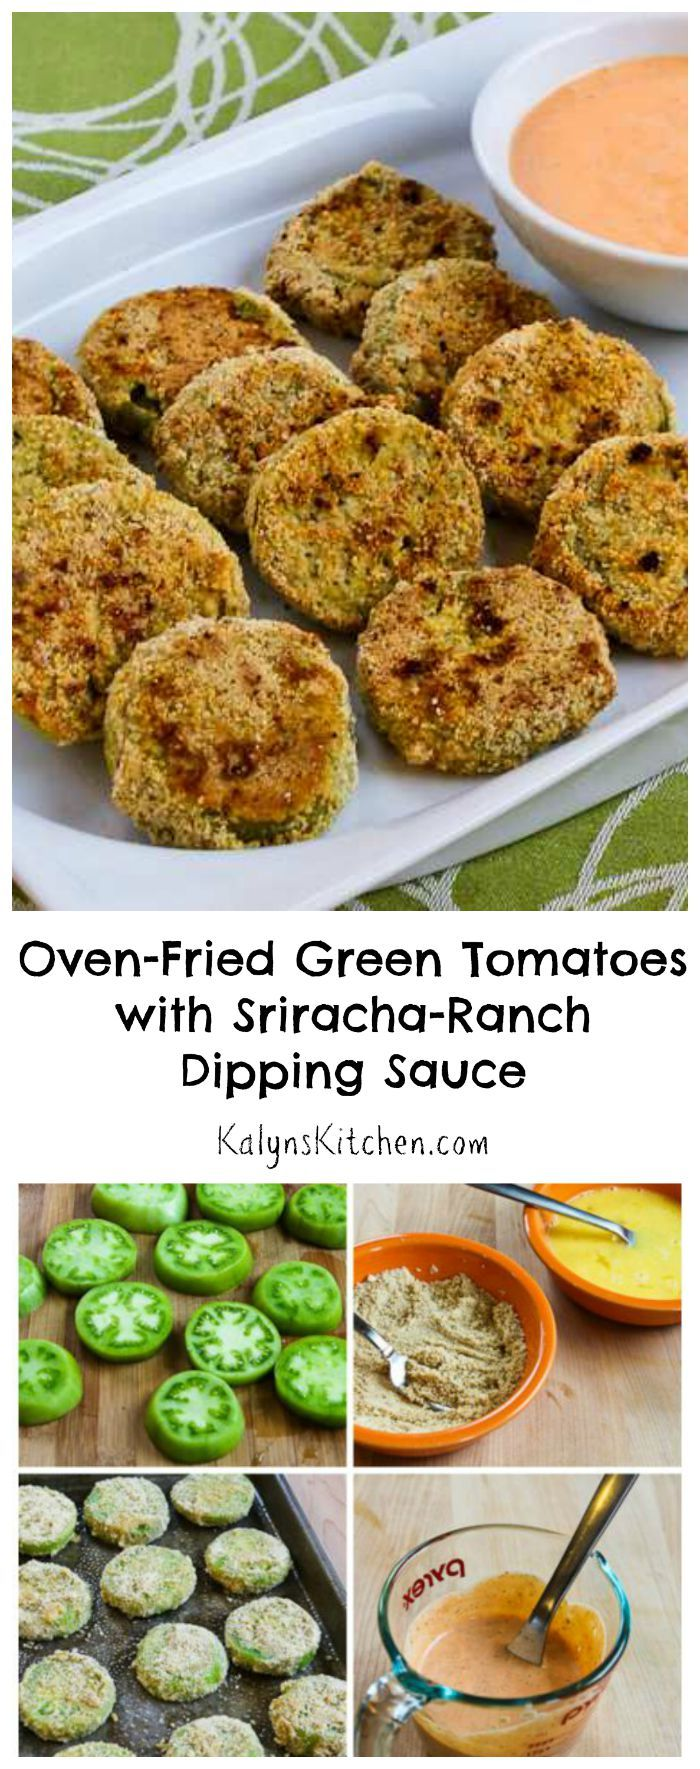 If you're looking for a recipe that will wow your guests at a Labor Day party, these Oven-Fried Green Tomatoes with Sriracha-Ranch Dipping Sauce are definitely a winner! This recipe uses unripe green tomatoes in a healthier version of the classic southern fried green tomatoes. [from KalynsKitchen.com} #LowCarb #GlutenFree